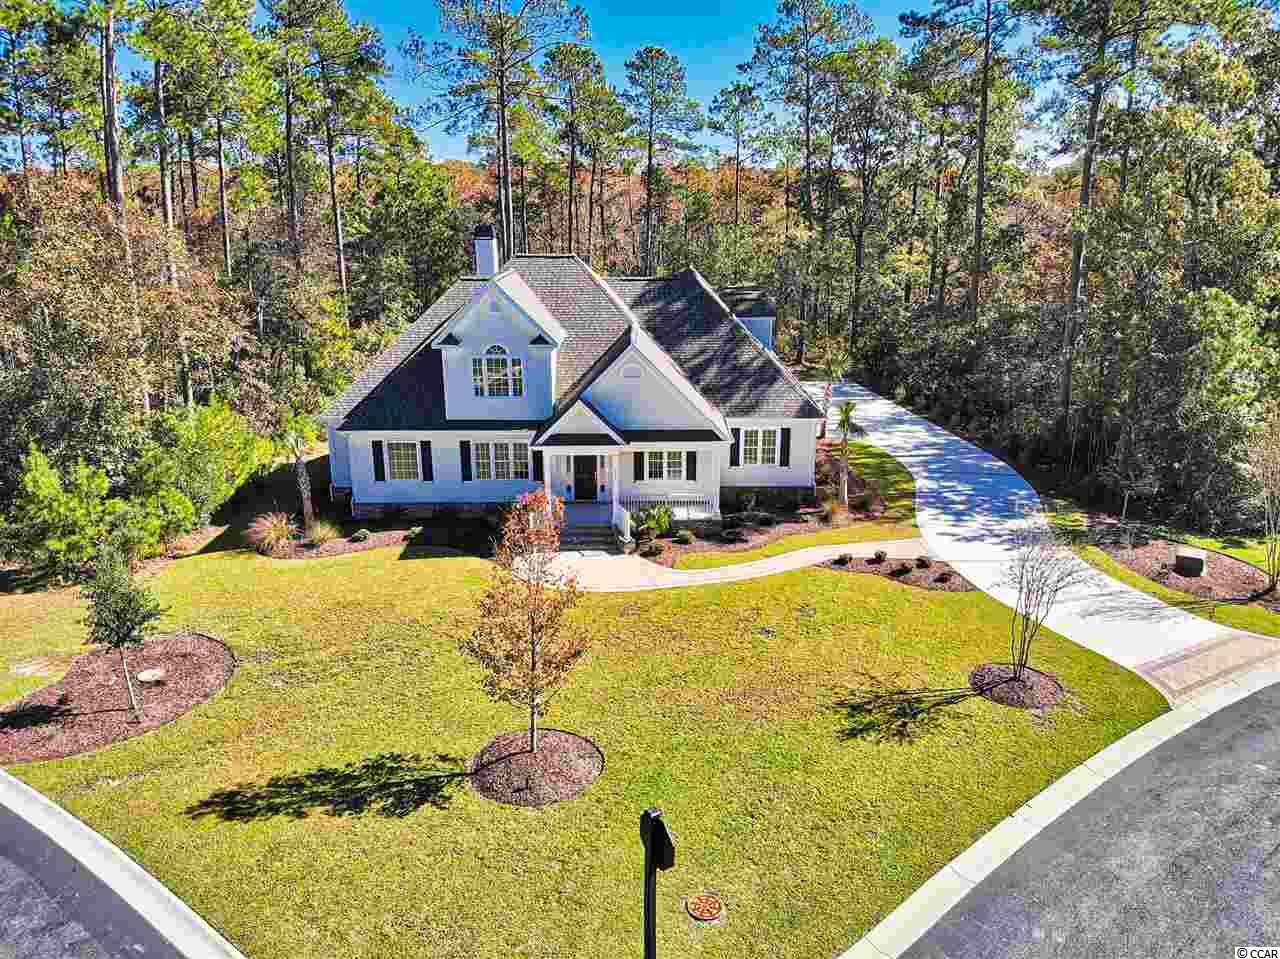 This home checks all the boxes! If you are looking for house that boasts beautiful craftsmanship, located directly on the Collins Creek for quick and easy access to the river, and is also in the award-winning St. James school district...look no further! Welcome home to 401 Cypress Wood Court! This breathtaking home located in the gated community of Bellwood Landing is situated on a private, wooded creek front lot. This custom home features four bedrooms, three and one half bathrooms and a three car garage. The open floor plan includes a custom kitchen complete with breakfast area as well as a large family room with fireplace, walk-in pantry, laundry room and mud room. The fourth bedroom and full bathroom are upstairs and would be perfect for an older child or guest suite. The attention to detail is immediately evident upon entering the master bedroom suite with a tray ceiling, crown molding and large windows offering an abundance of natural light. The large walk-in shower and stand-alone tub, combined with the his and her vanities may convince you to never leave the master bathroom, not to mention the HUGE walk-in closet with built-ins! The outside living space will allow you to take full advantage of the beautiful South Carolina weather with a large screened in porch as you enjoy your 1+ acre property with 100 feet on the Collins Creek with the dock permit already in place! Nearby private amenities include a pool, tennis courts, picnic tables, a covered pavilion, play equipment for children, and walking trails throughout the 40 Acre Park. And you will be within ten minutes of a modern hospital, shopping, Murrells Inlet famous dining, and, of course the sandy Atlantic Ocean beaches. And SC's only TPC golf course is a very short walk away.